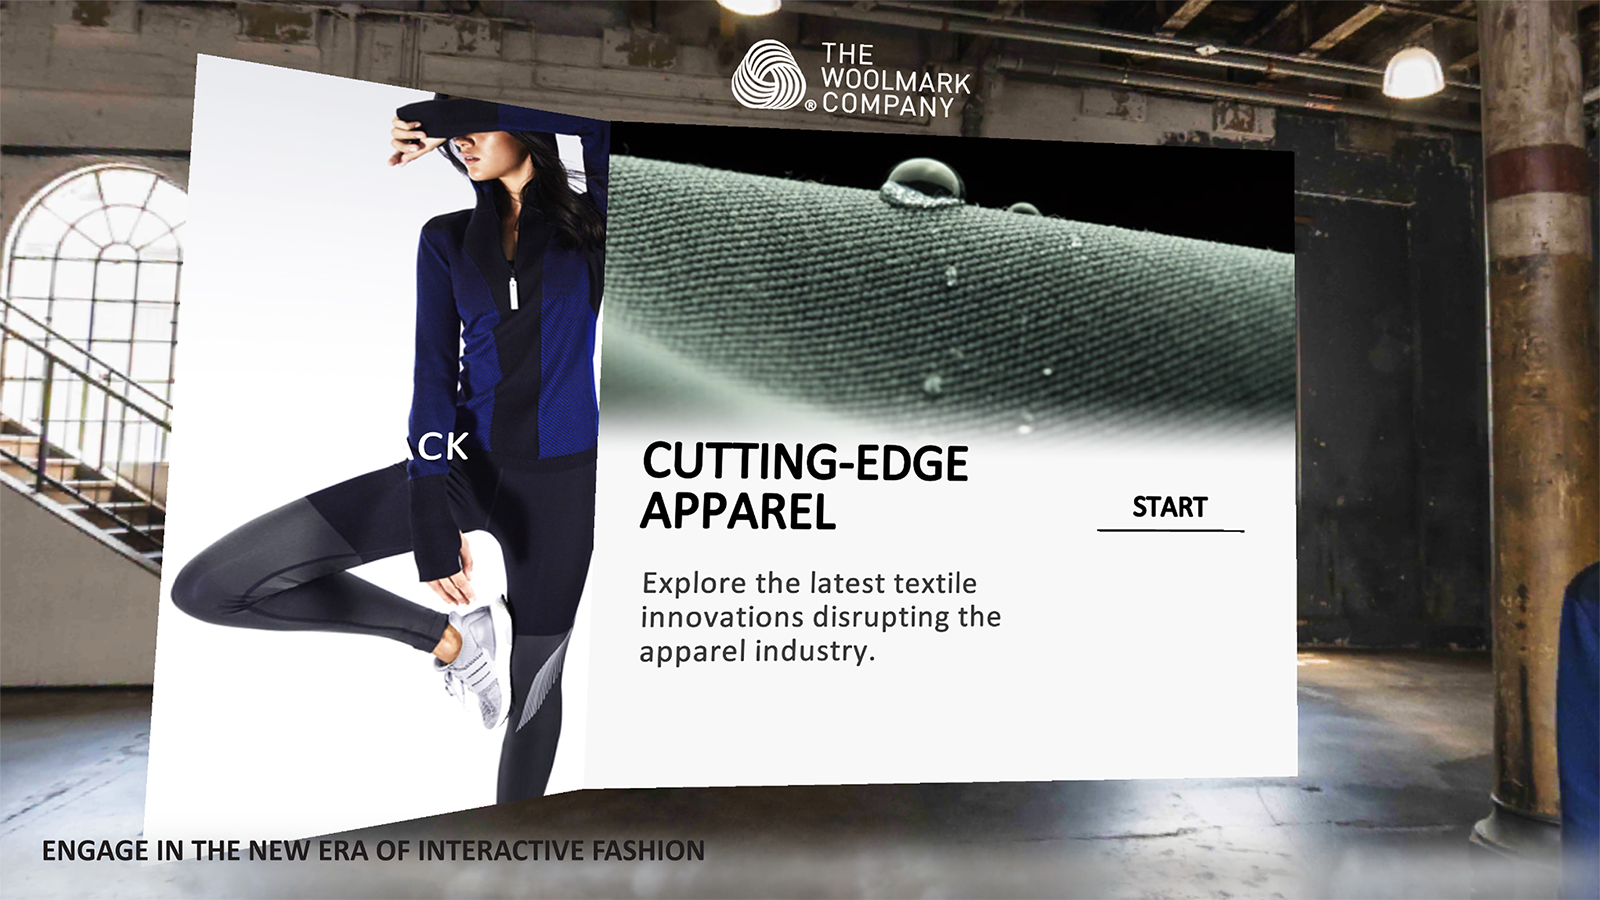 Woolmark VR Menu project screenshot 02